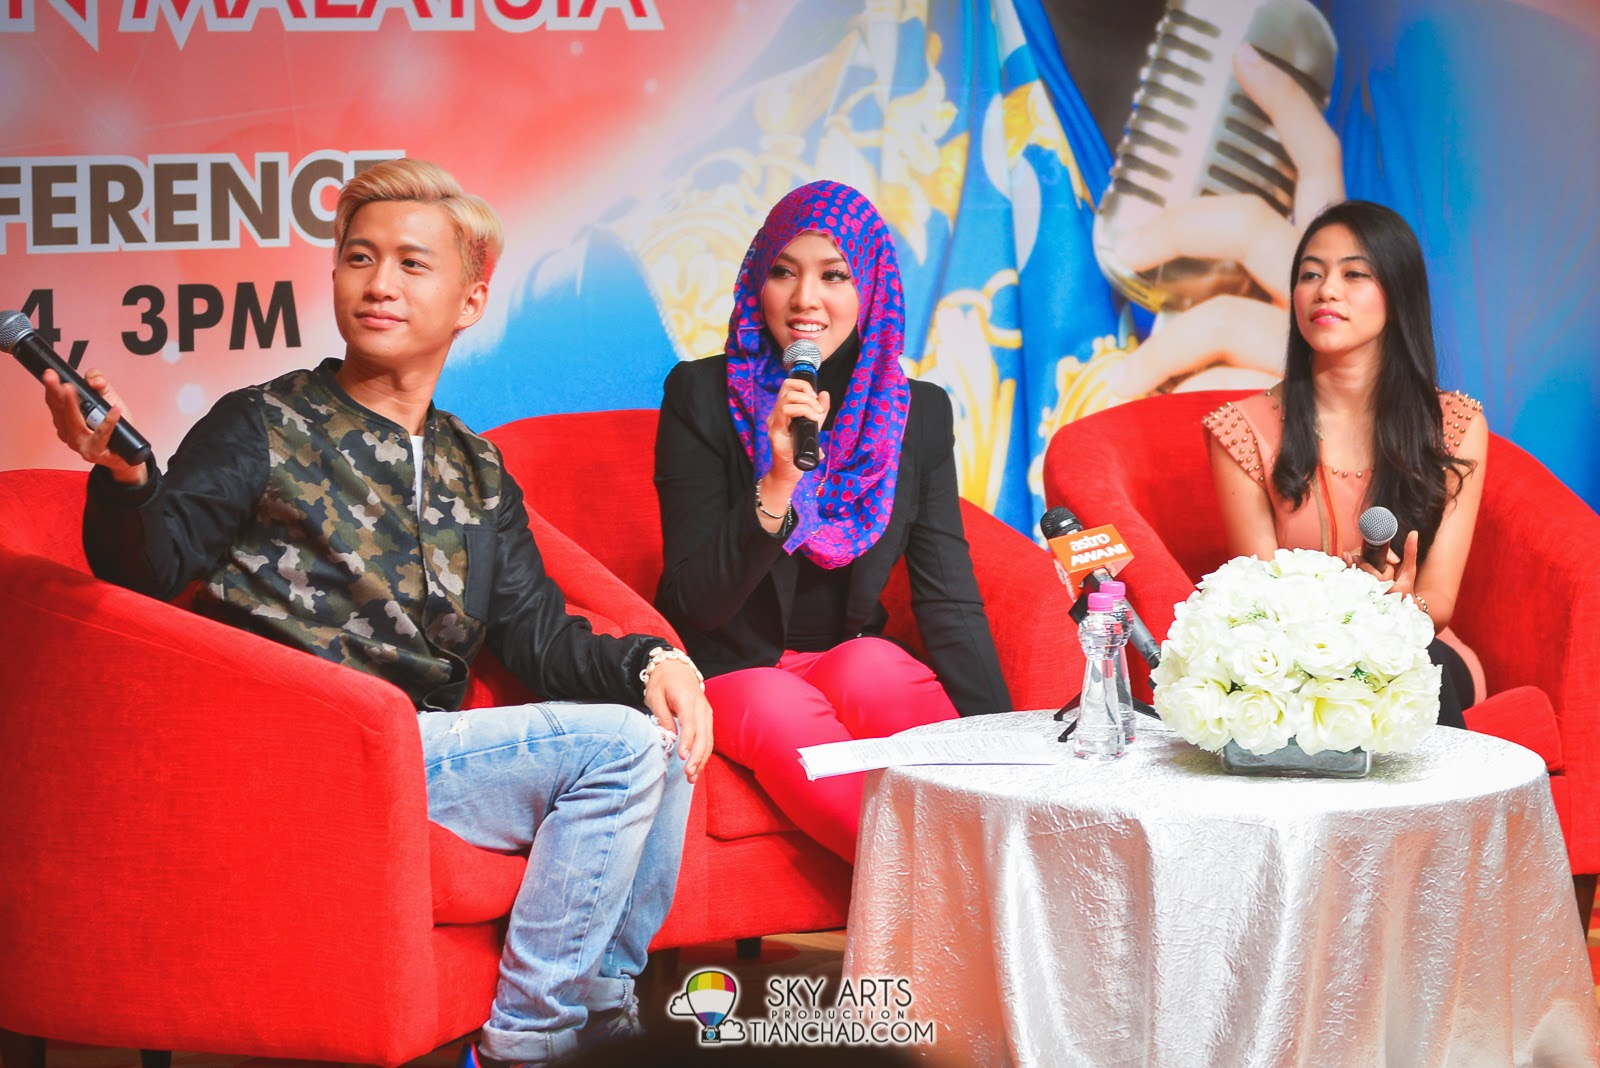 Shila Amzah answering question in three different language - Chinese, Malay and English A multi talented woman who is learning Korean too!